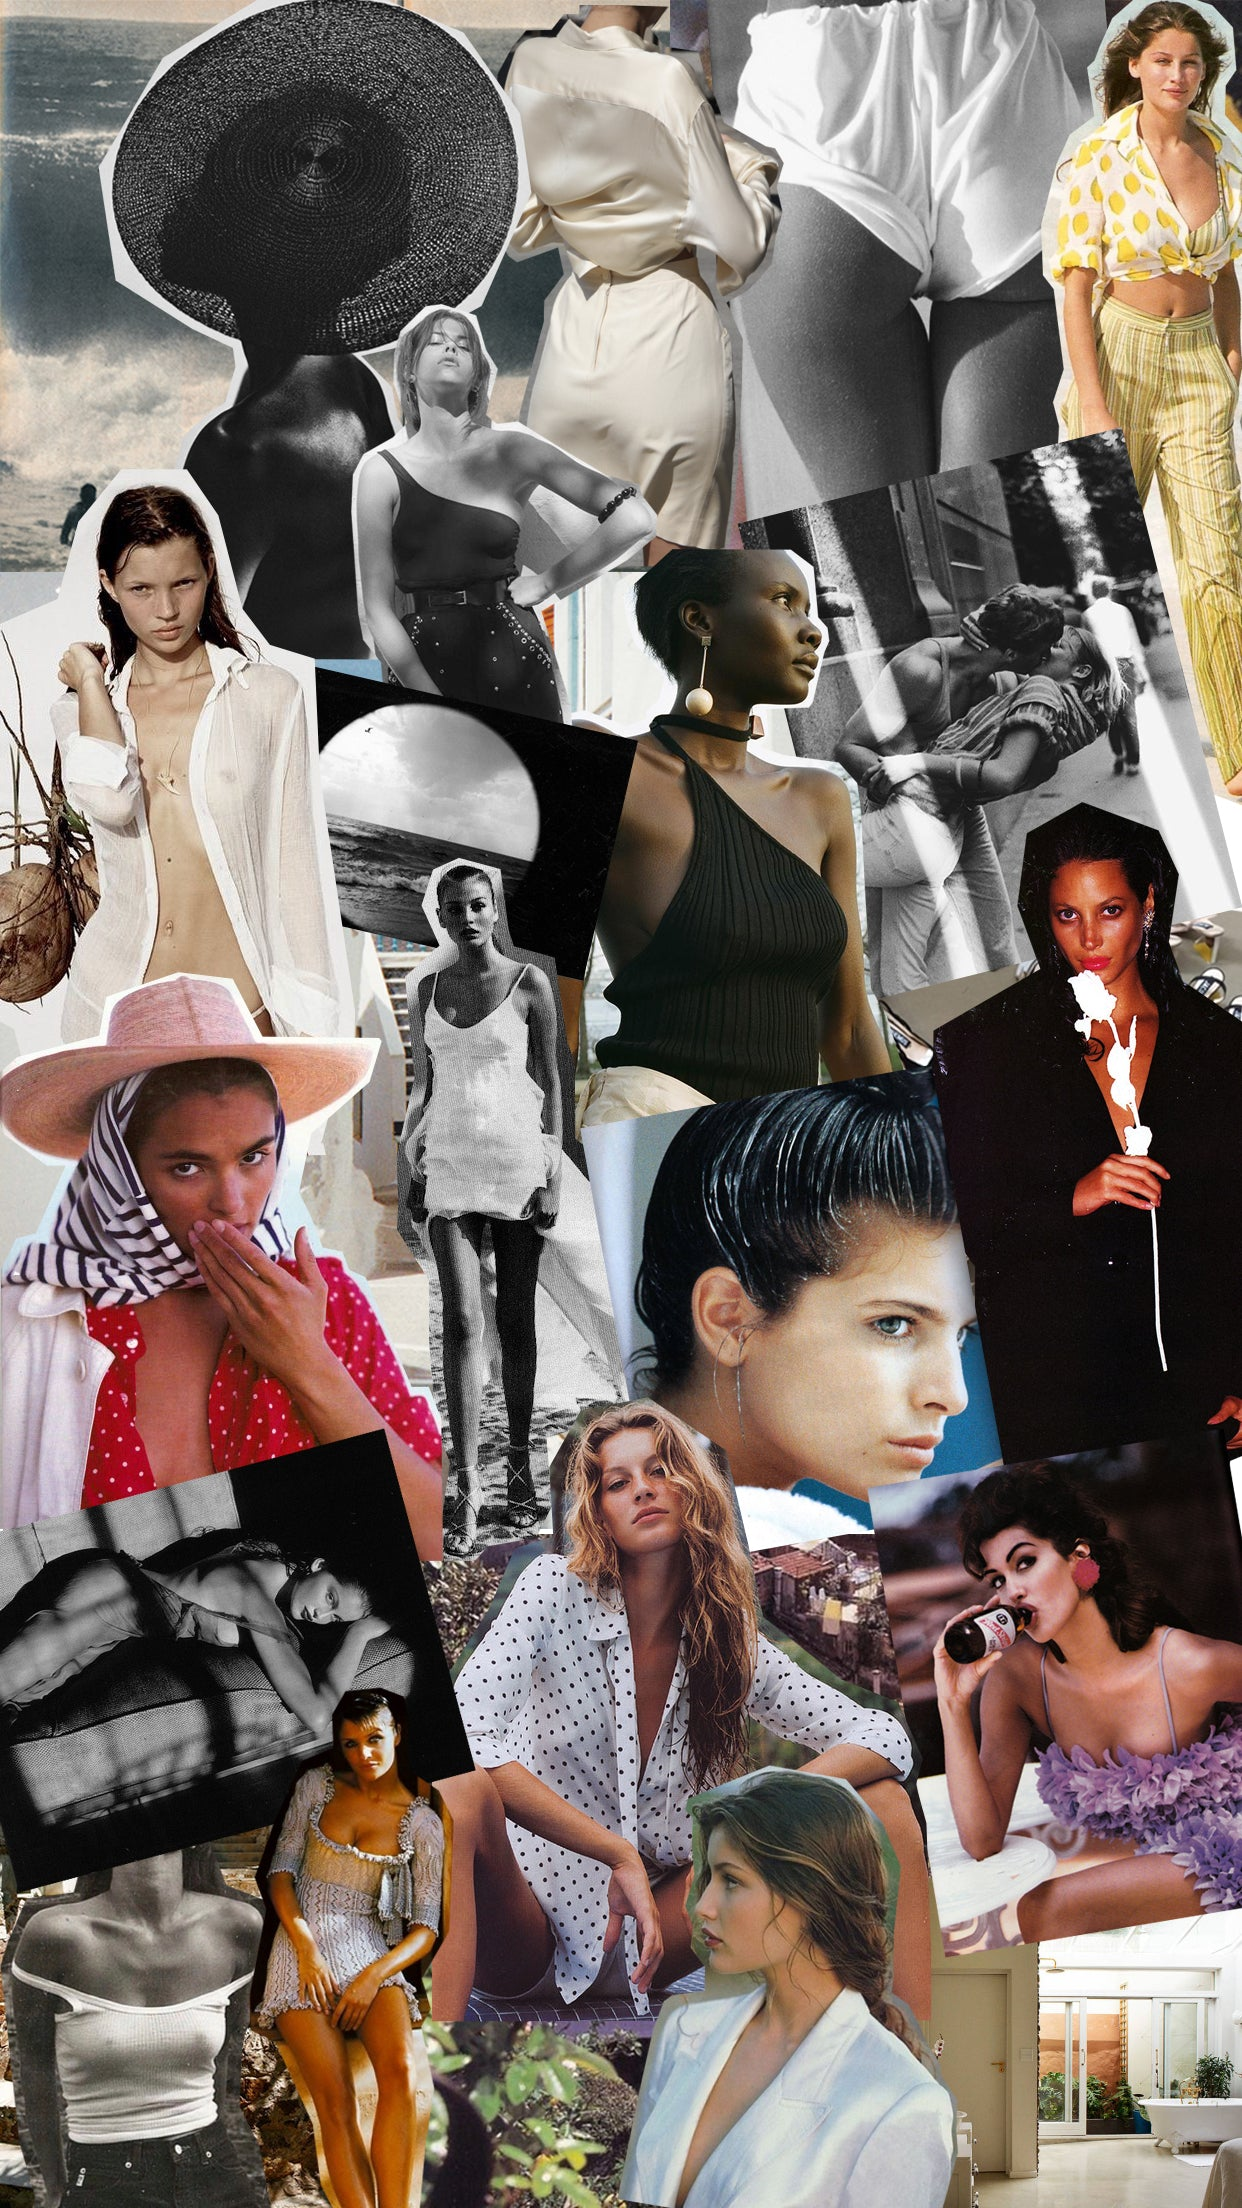 The Line by K Moodboard featuring Jaquemus, Bruce Weber, Pierrot and vintage vogue editorials